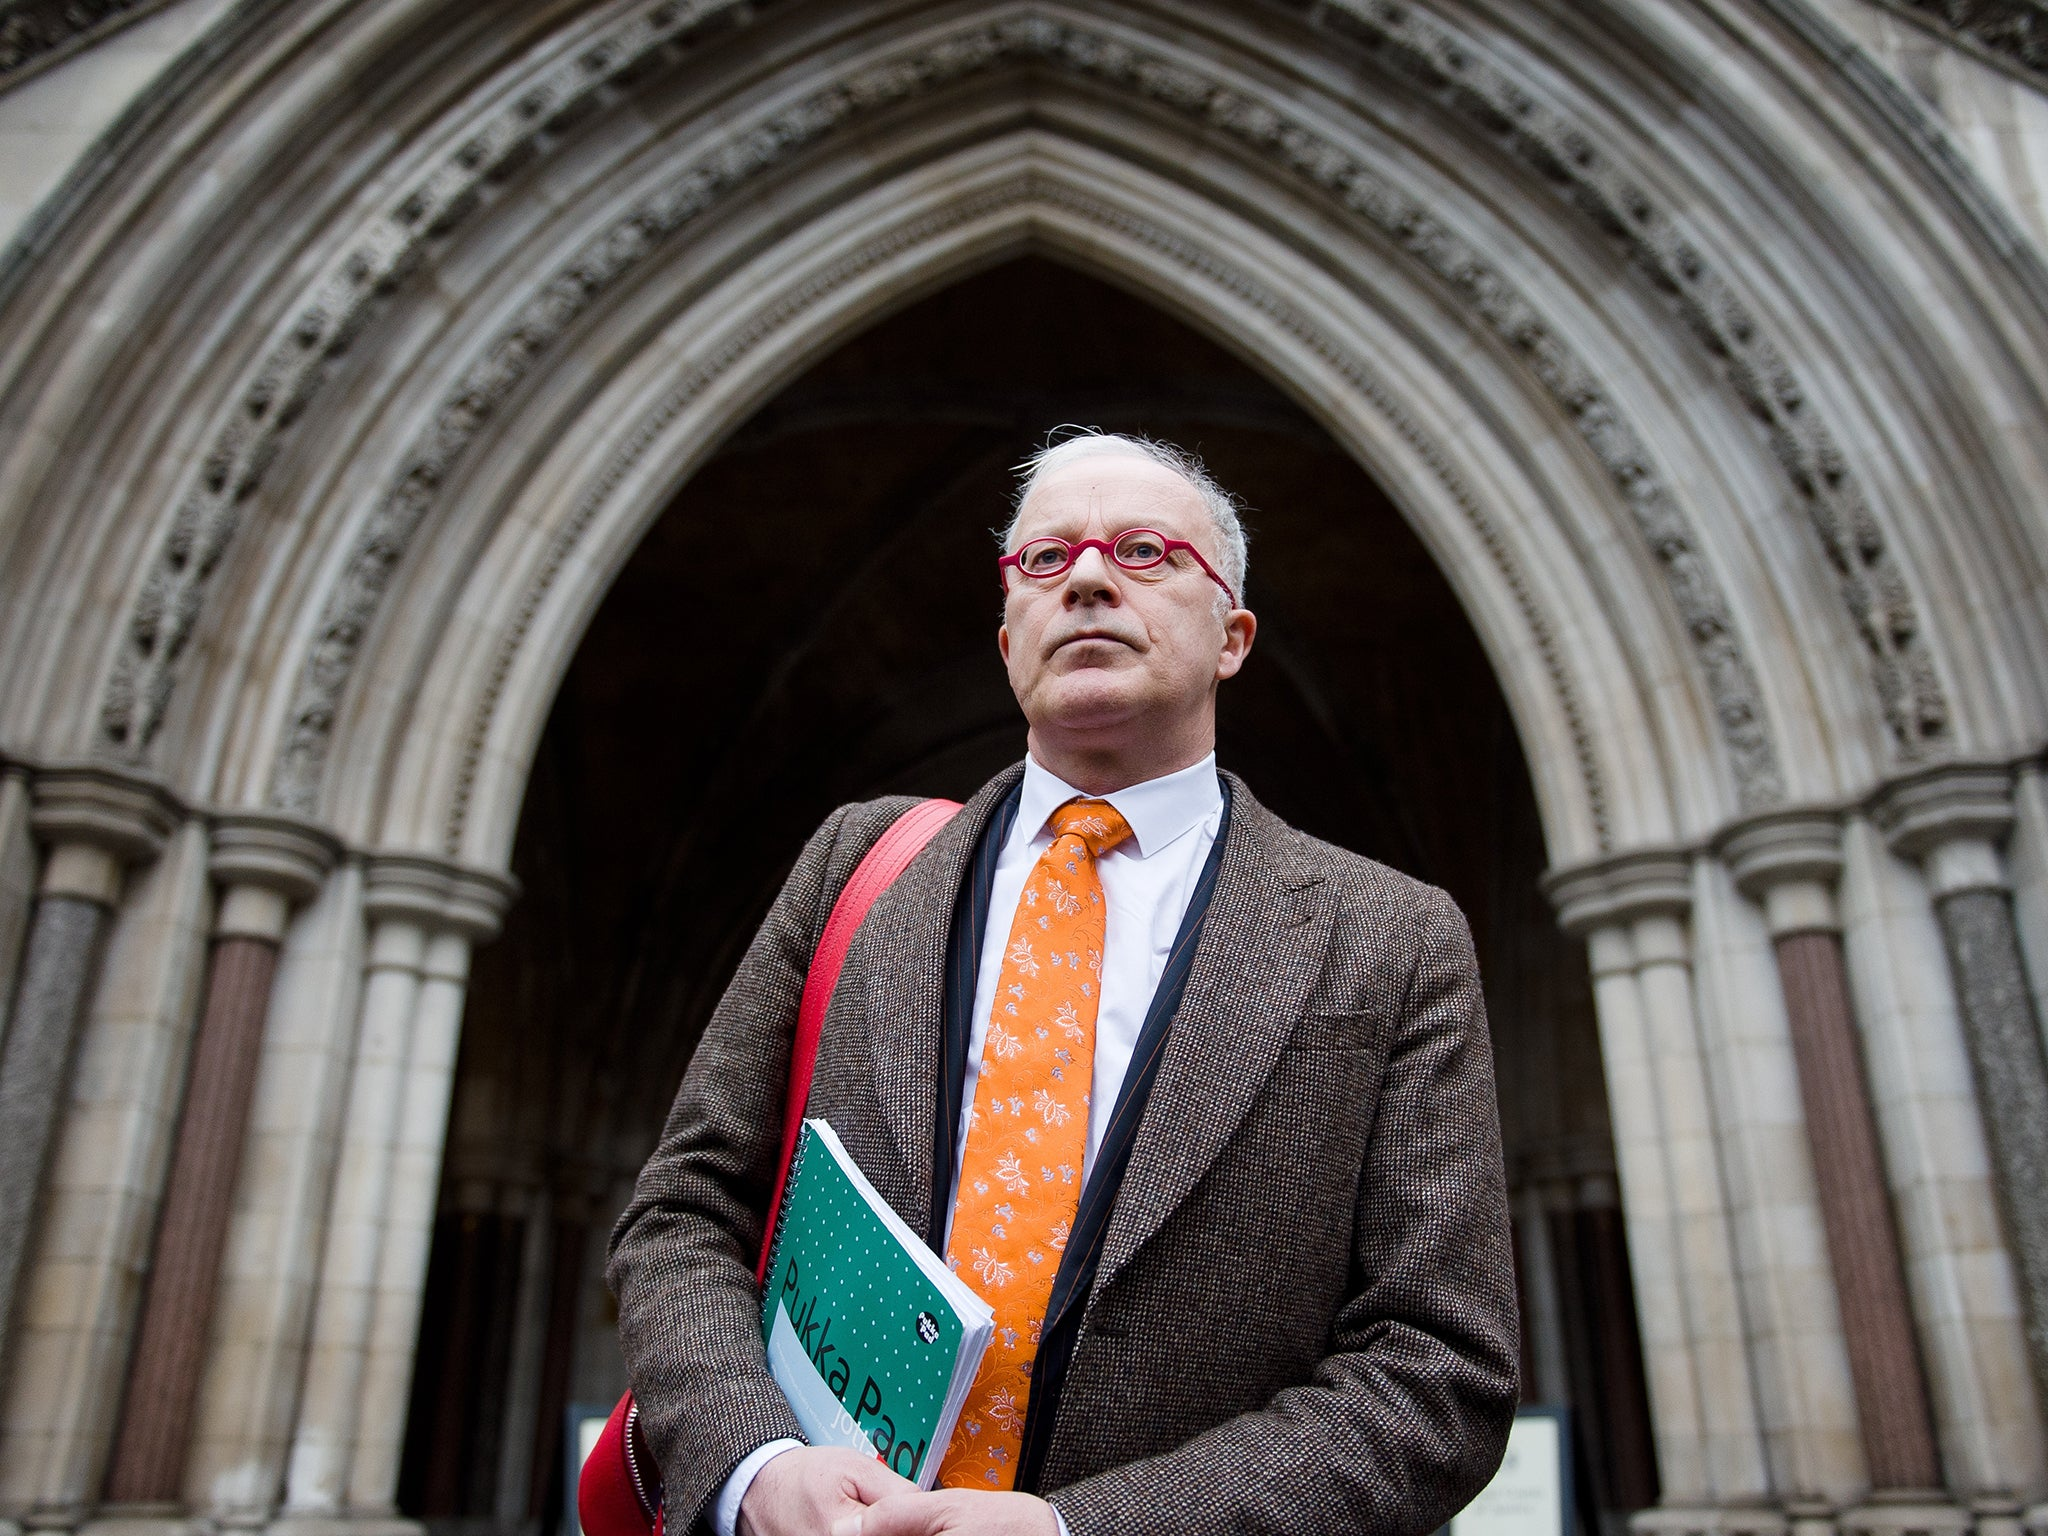 Top human rights lawyer faces being struck off for ...